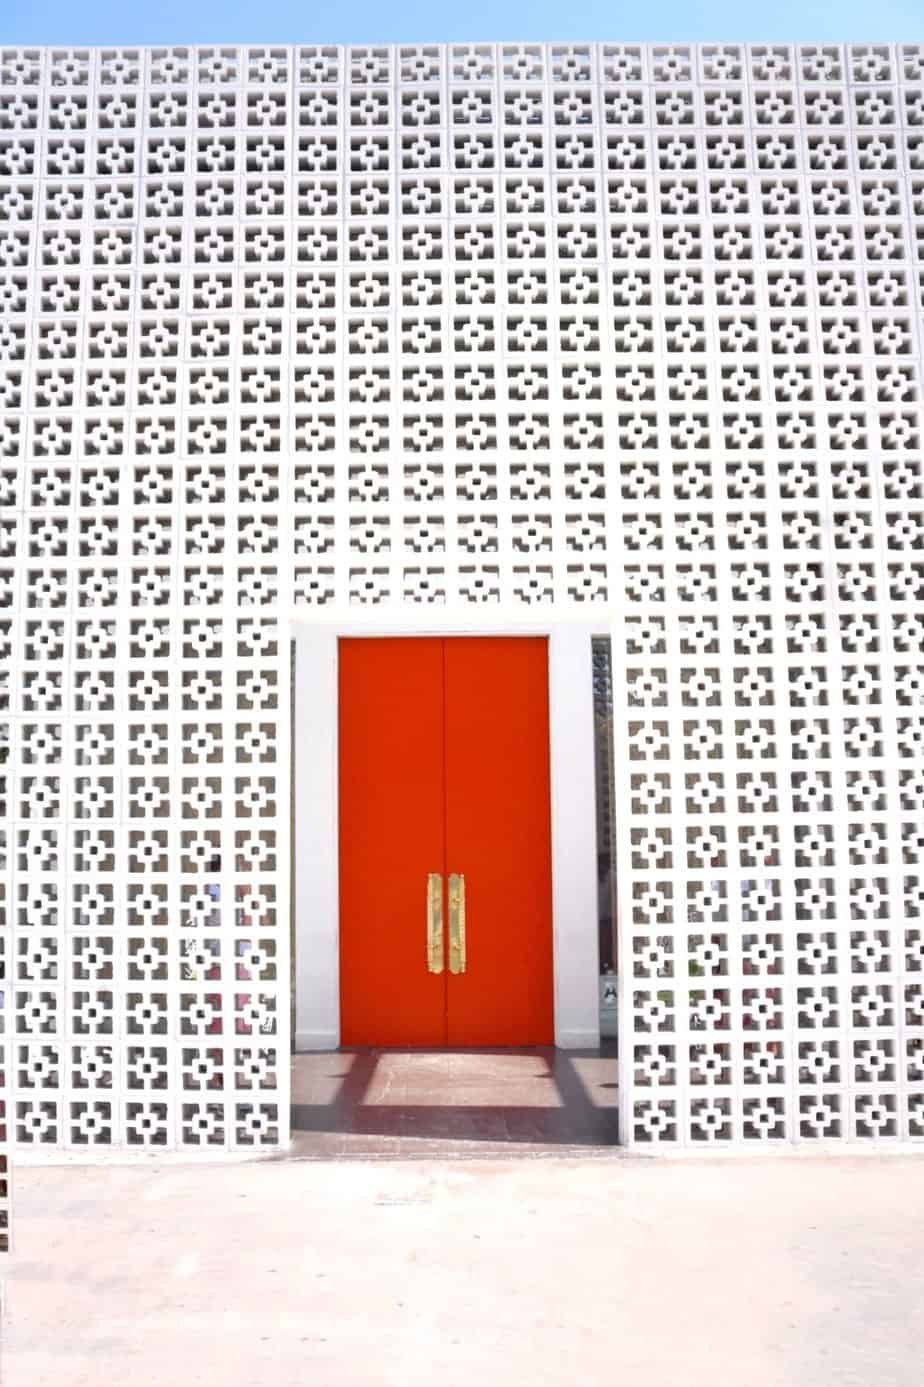 parker palm springs orange doors